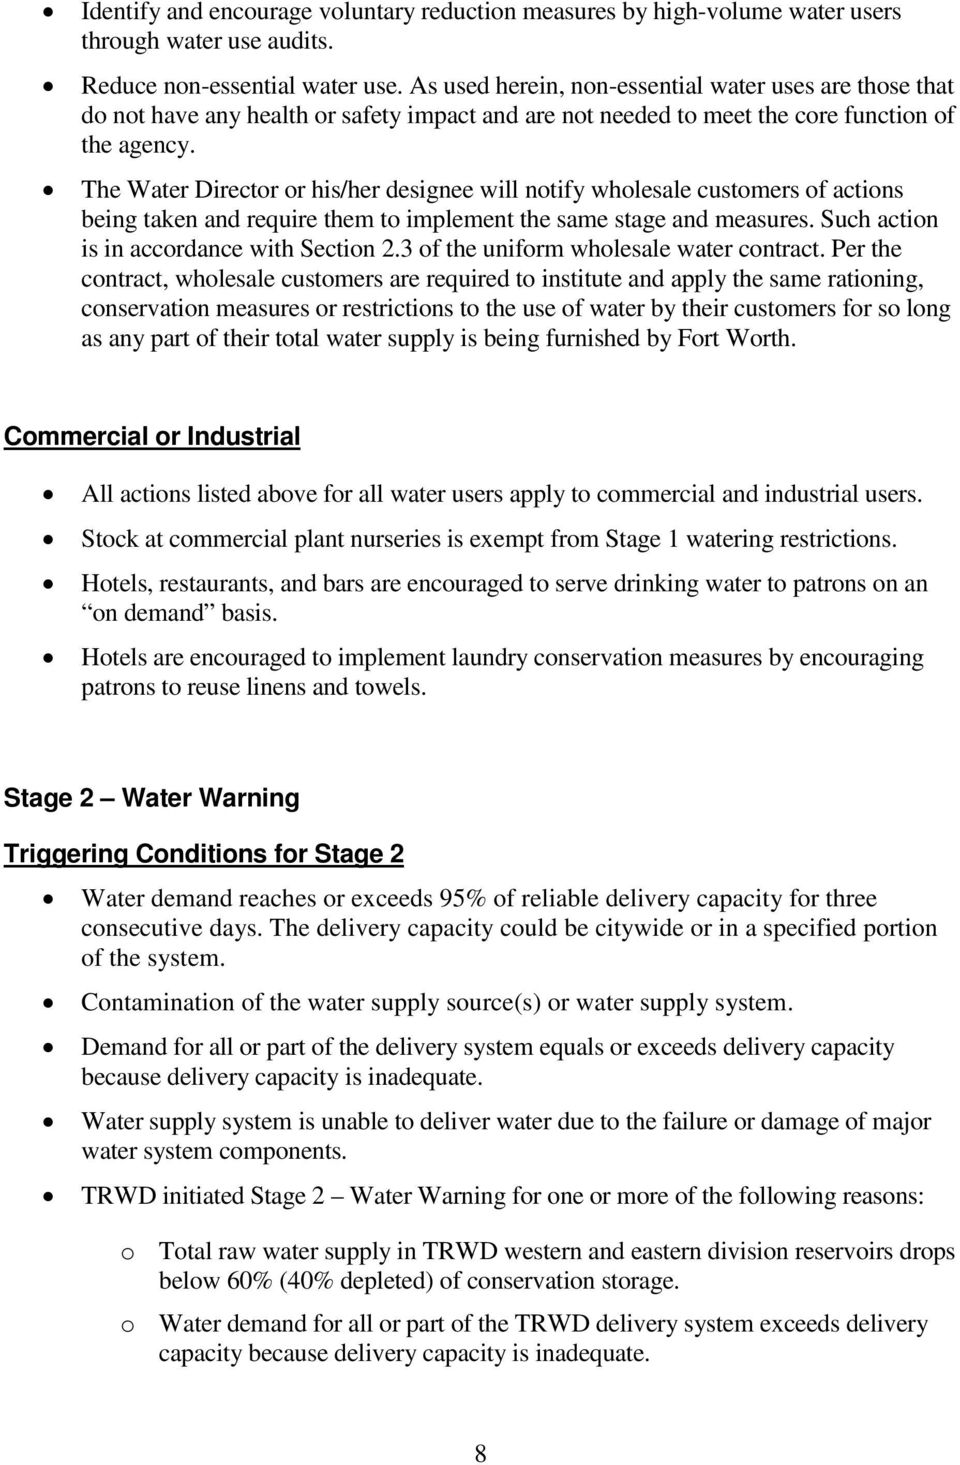 The Water Director or his/her designee will notify wholesale customers of actions being taken and require them to implement the same stage and measures. Such action is in accordance with Section 2.